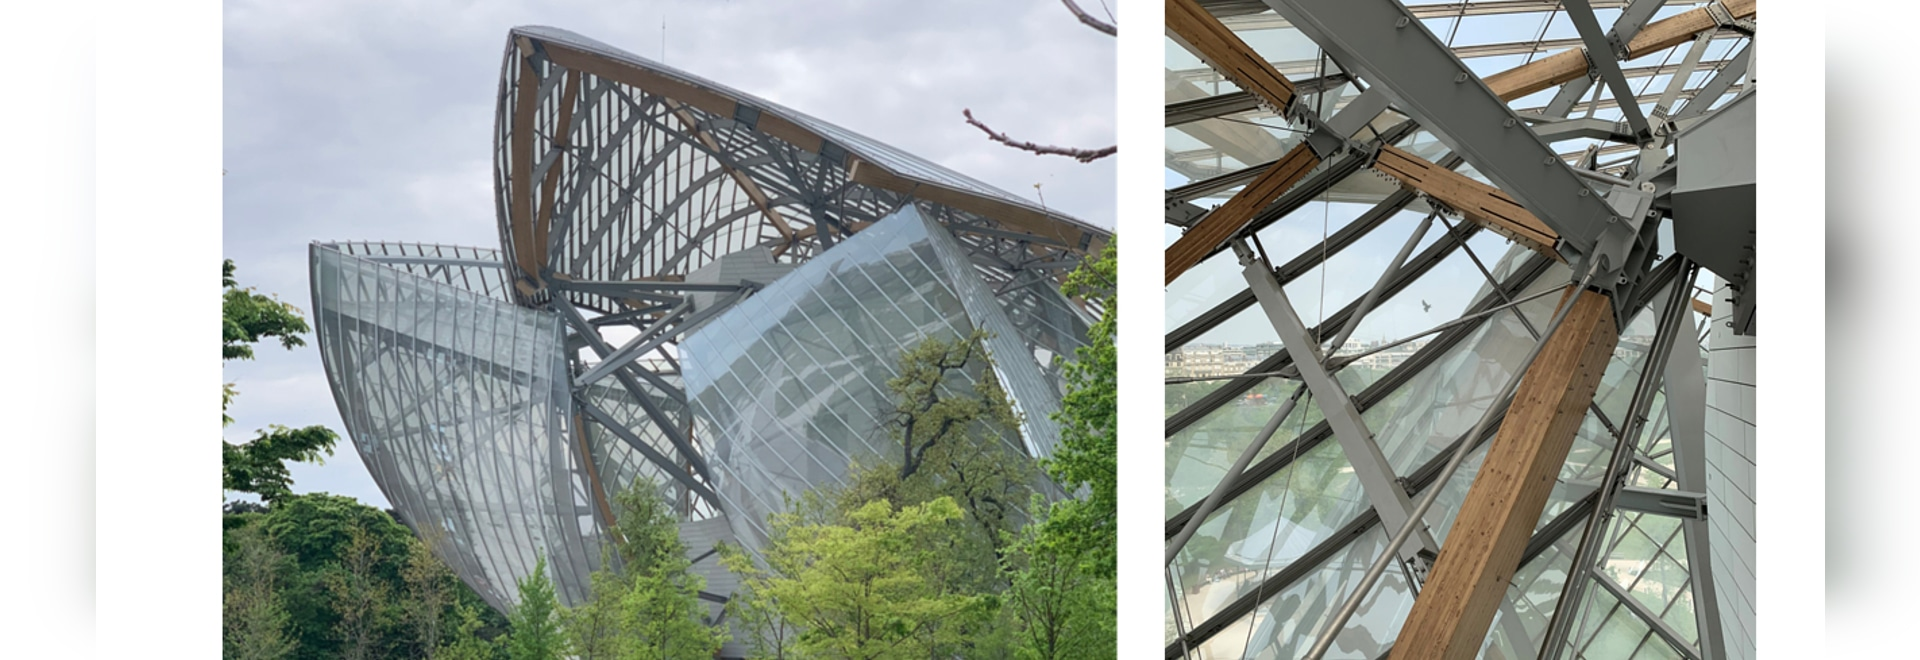 Macalloy Tension Bars used in Fondation Louis Vuiiton, Paris, France